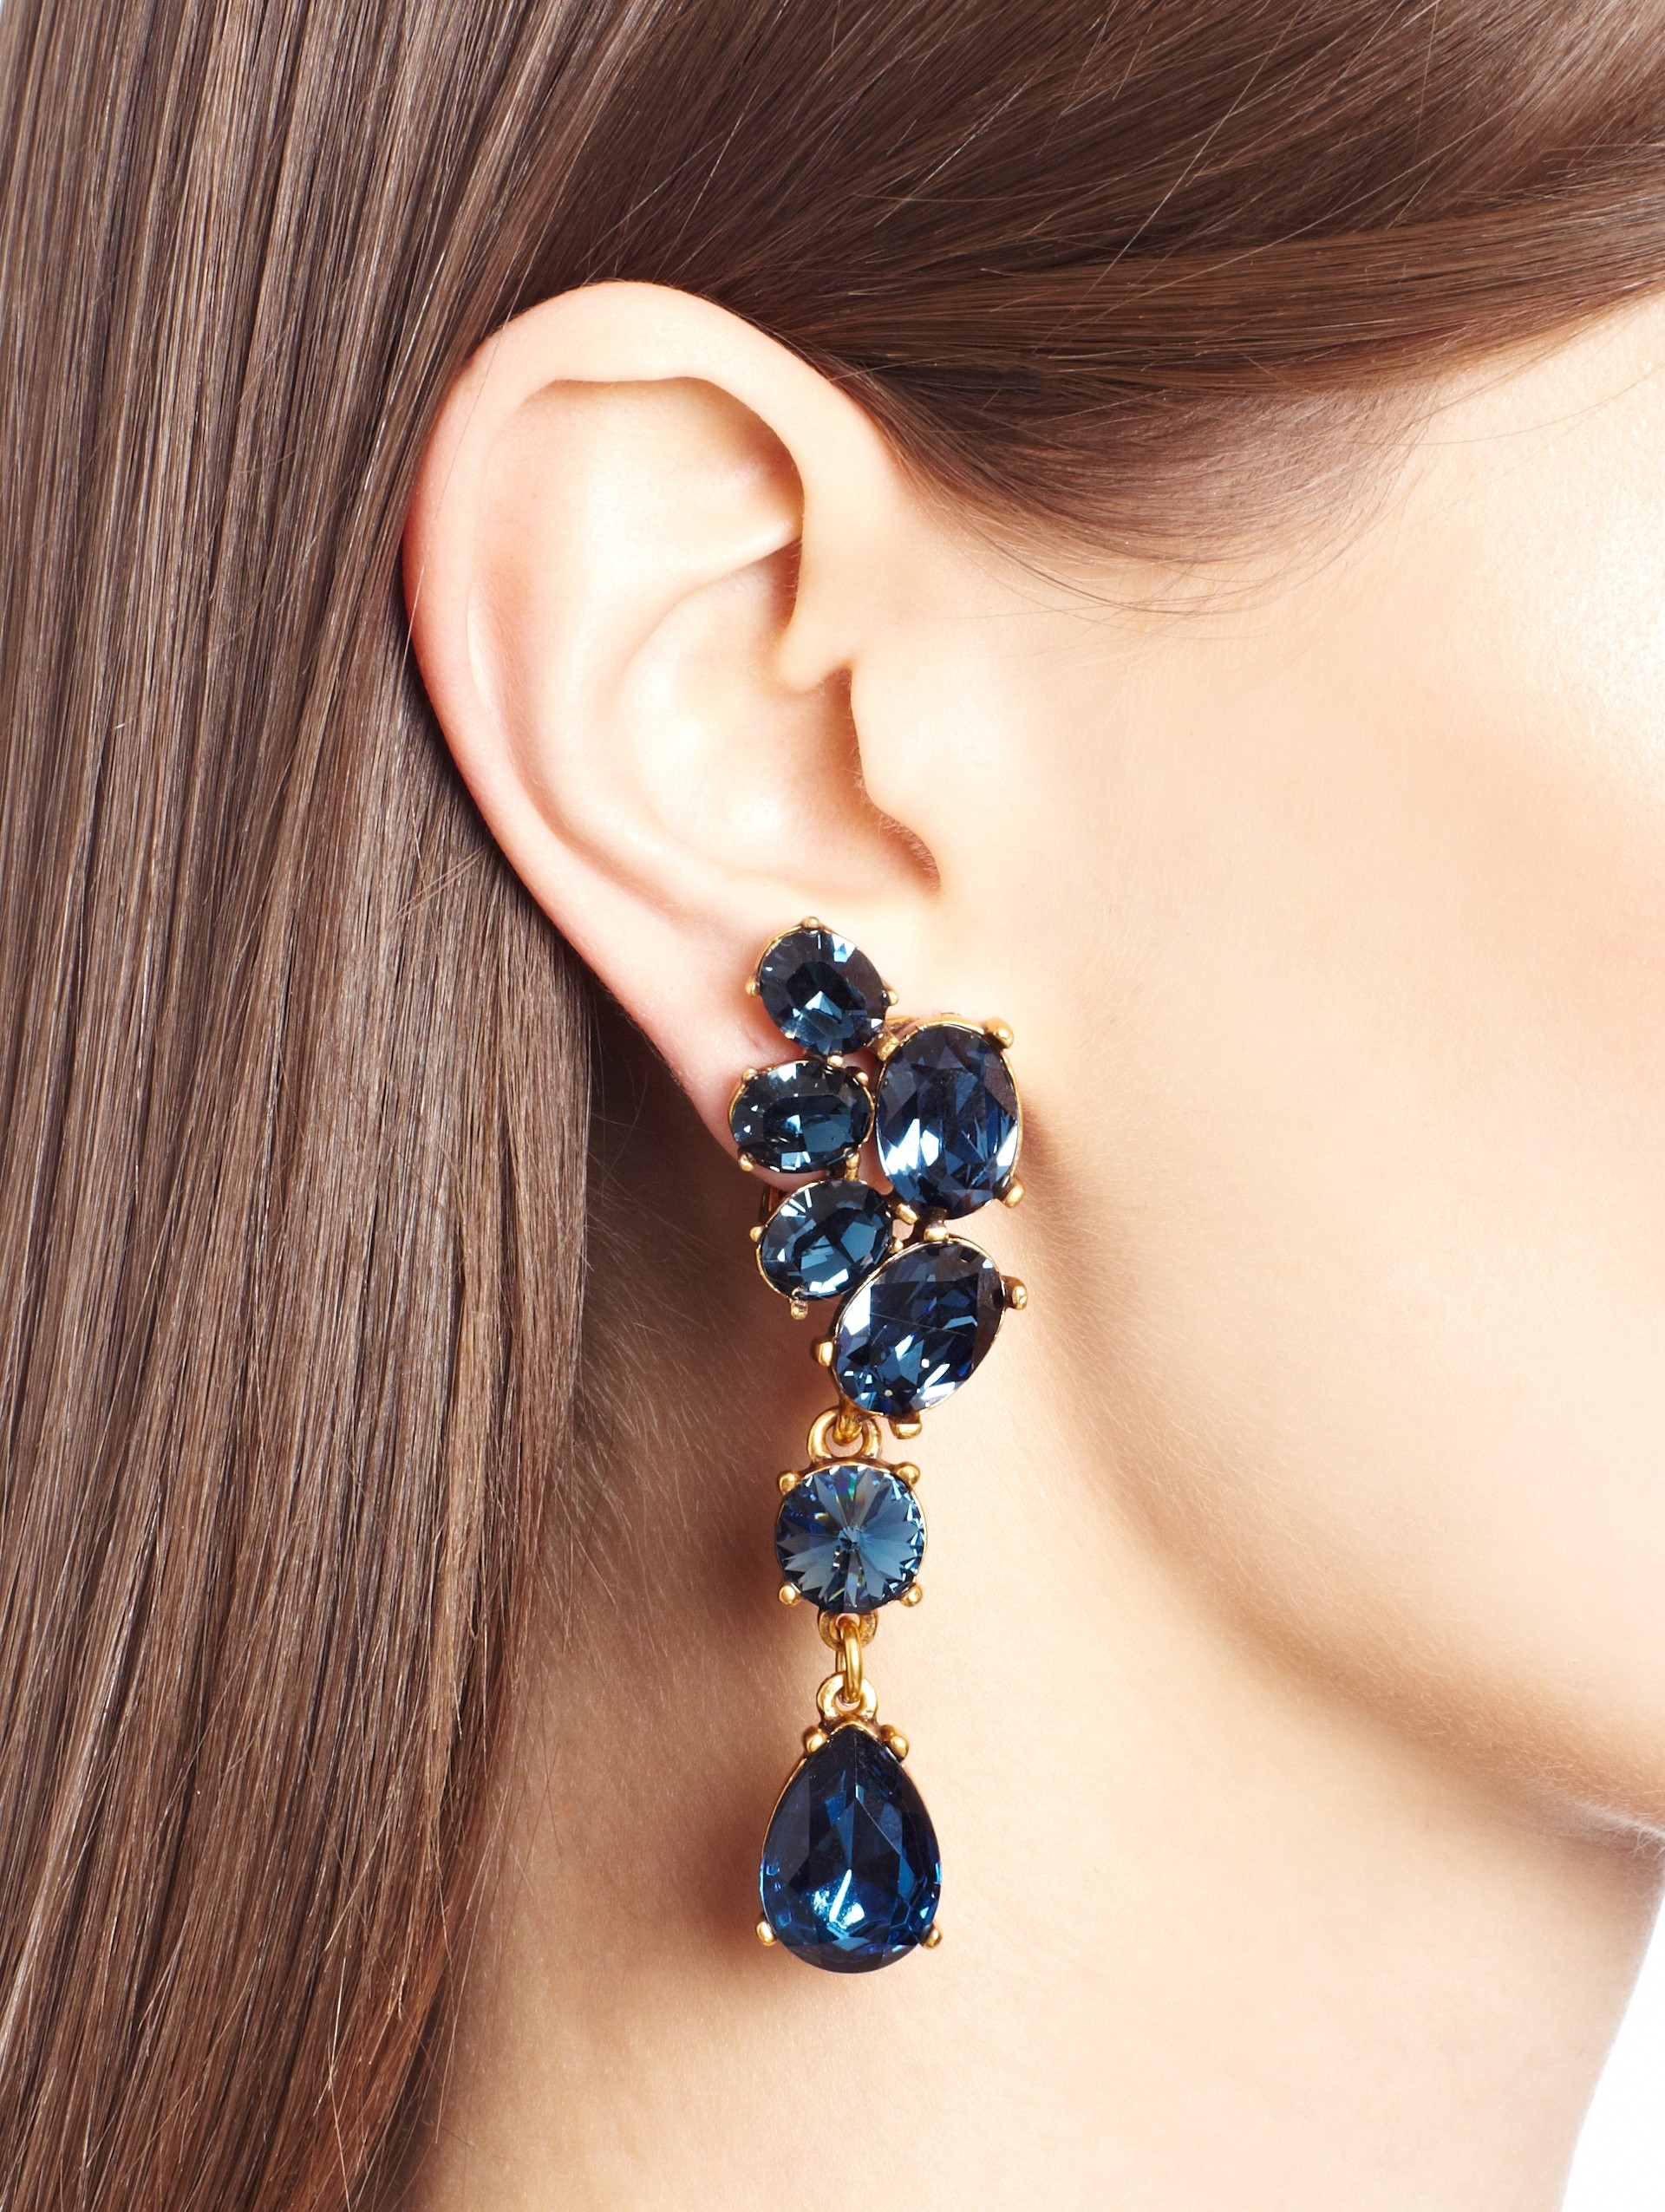 dbcf9bd85dcb Lyst - Oscar de la Renta Swarovski Crystal Asymmetrical Earrings in Blue